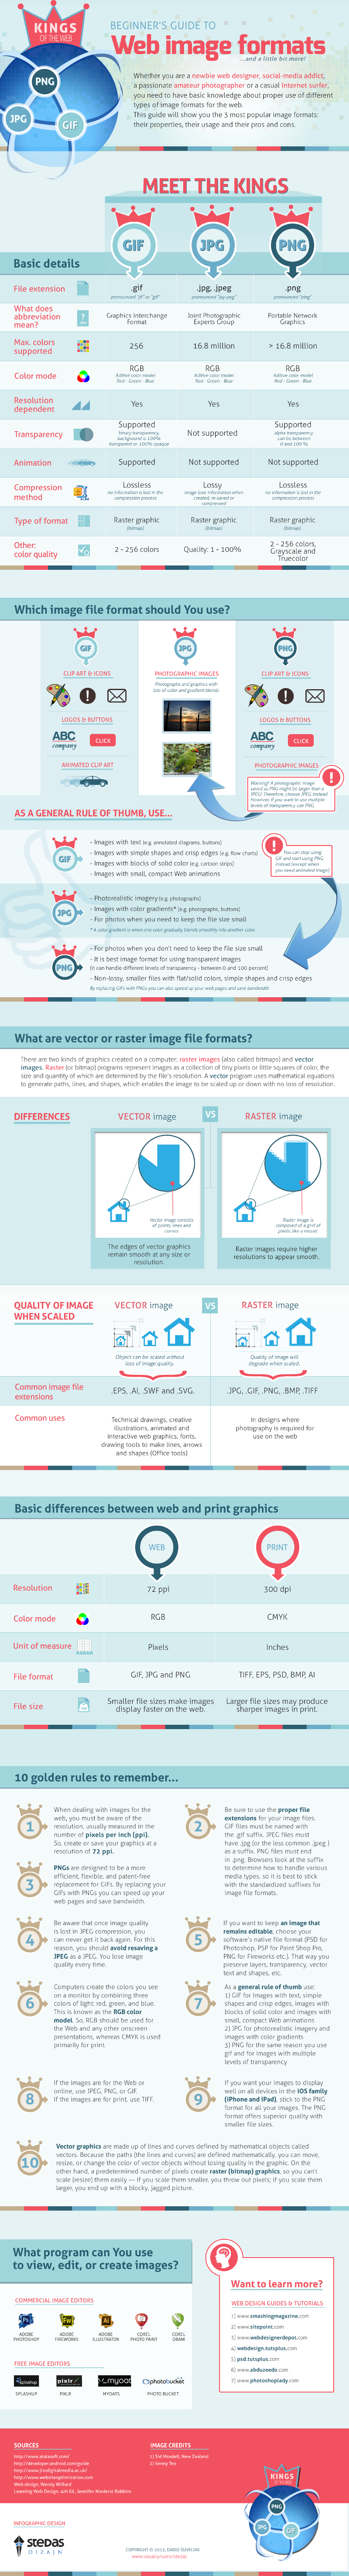 Png Vs Jpeg Vs Gif How To Choose The Best Image Format Infographic Marketing Social Media Infographic Social Media